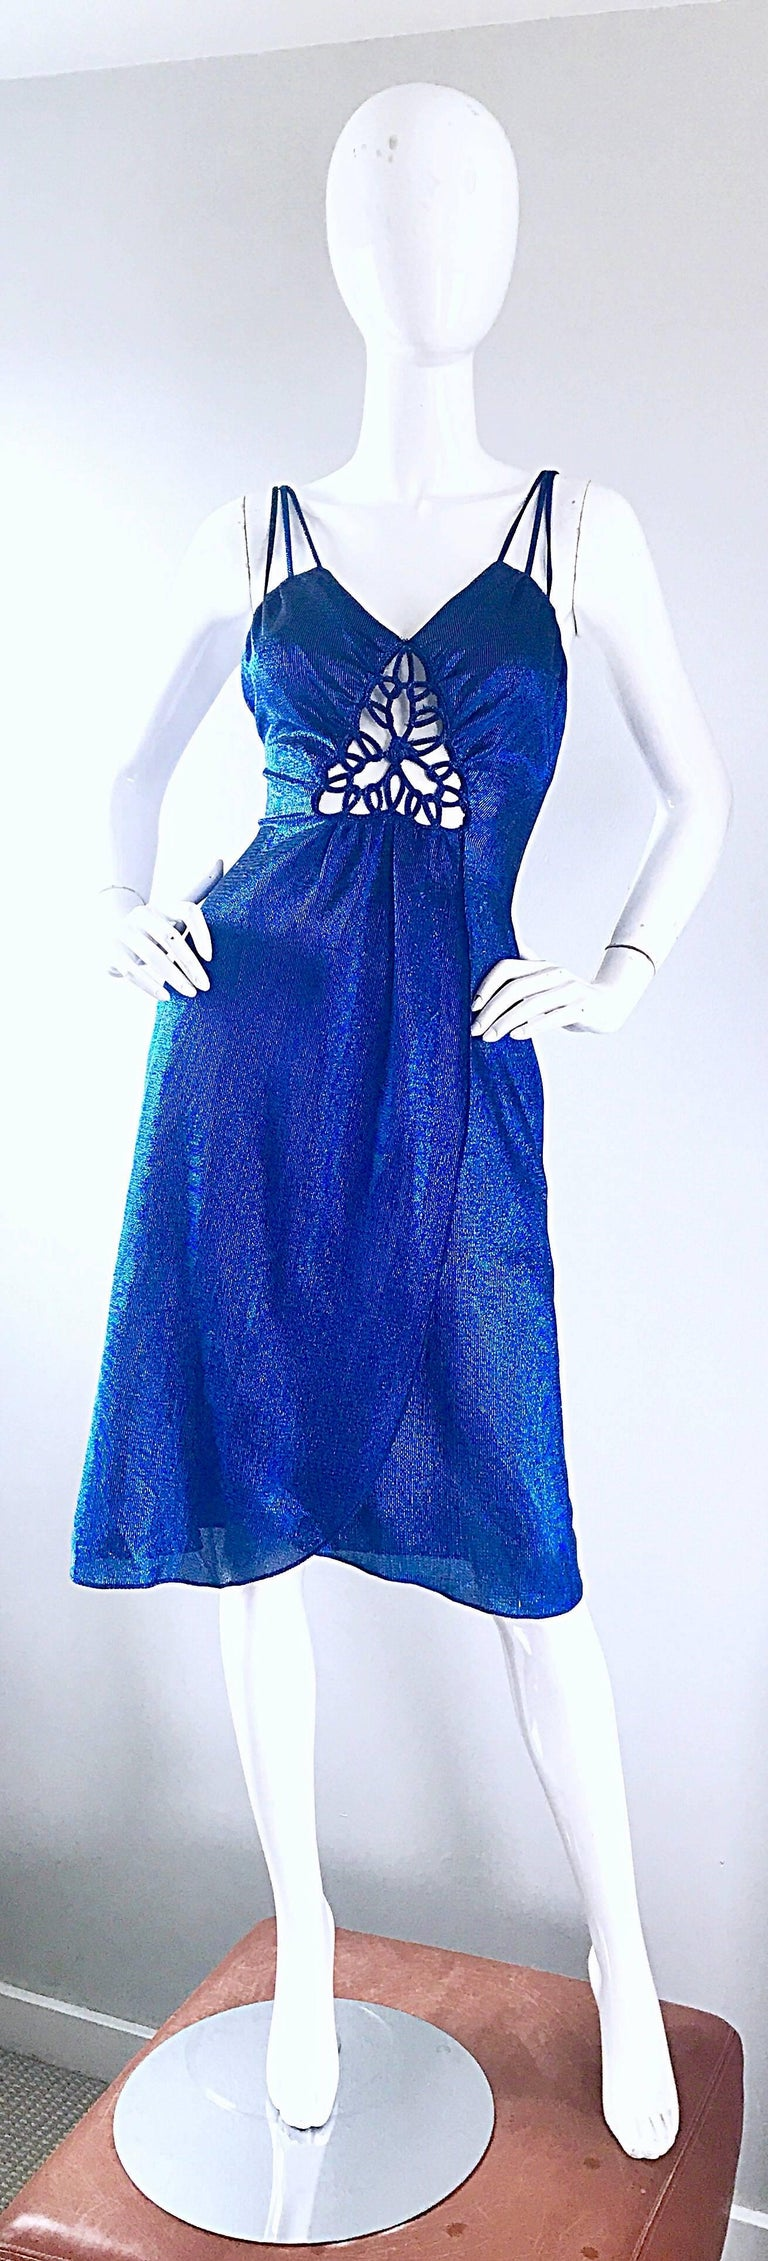 1970s Samir Sexy Electric Blue Metallic Cut - Out Slinky Vintage 70s Disco Dress For Sale 4